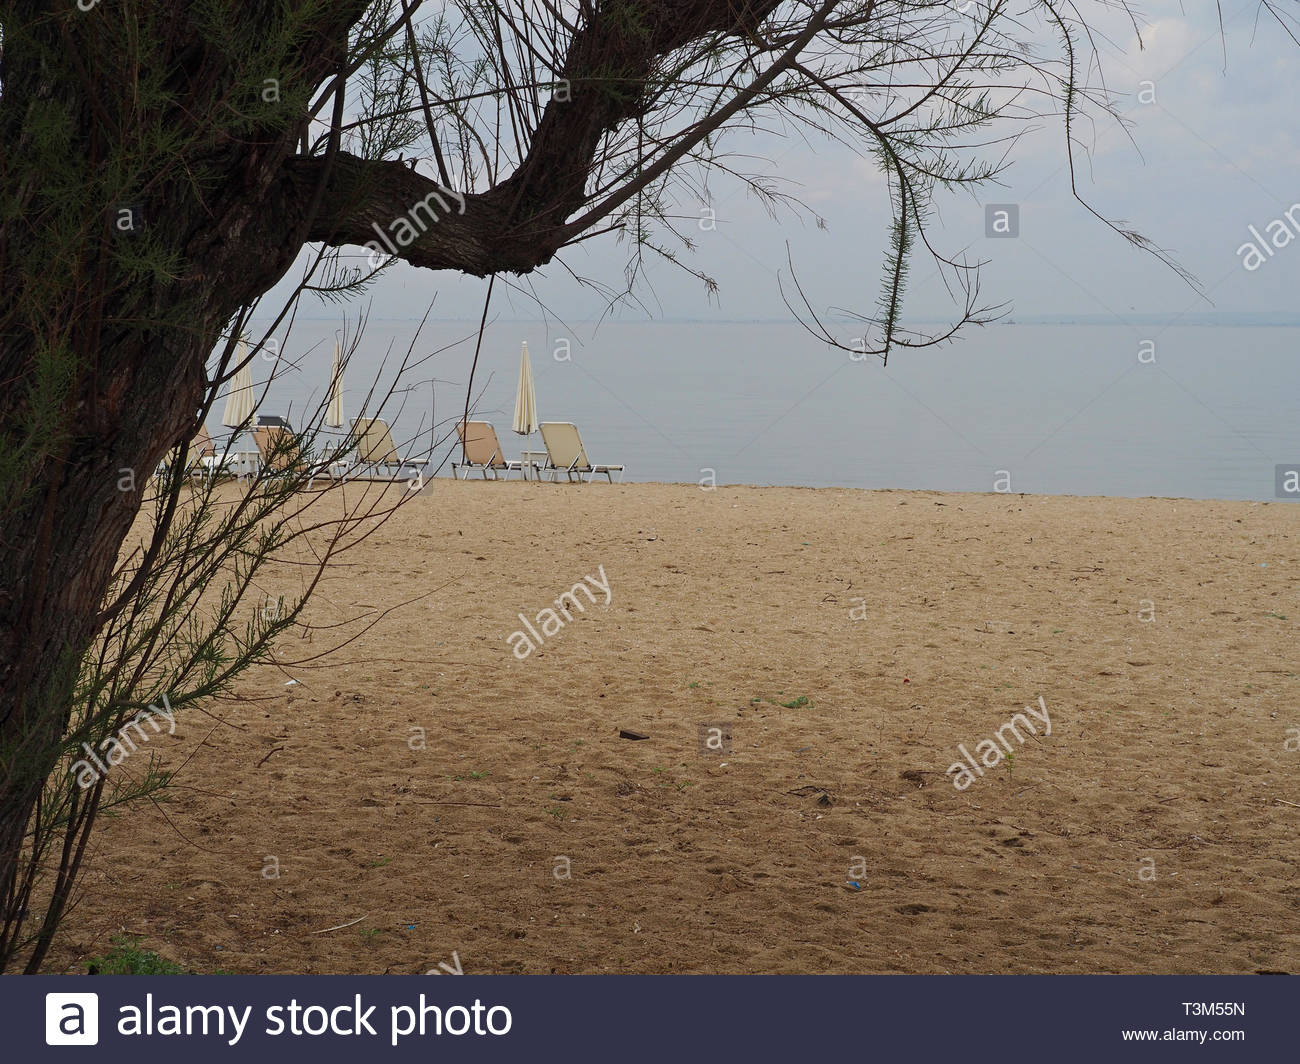 Unoccupied Coffee Shop Deck Chairs At The Seafront, View Behind A Tree